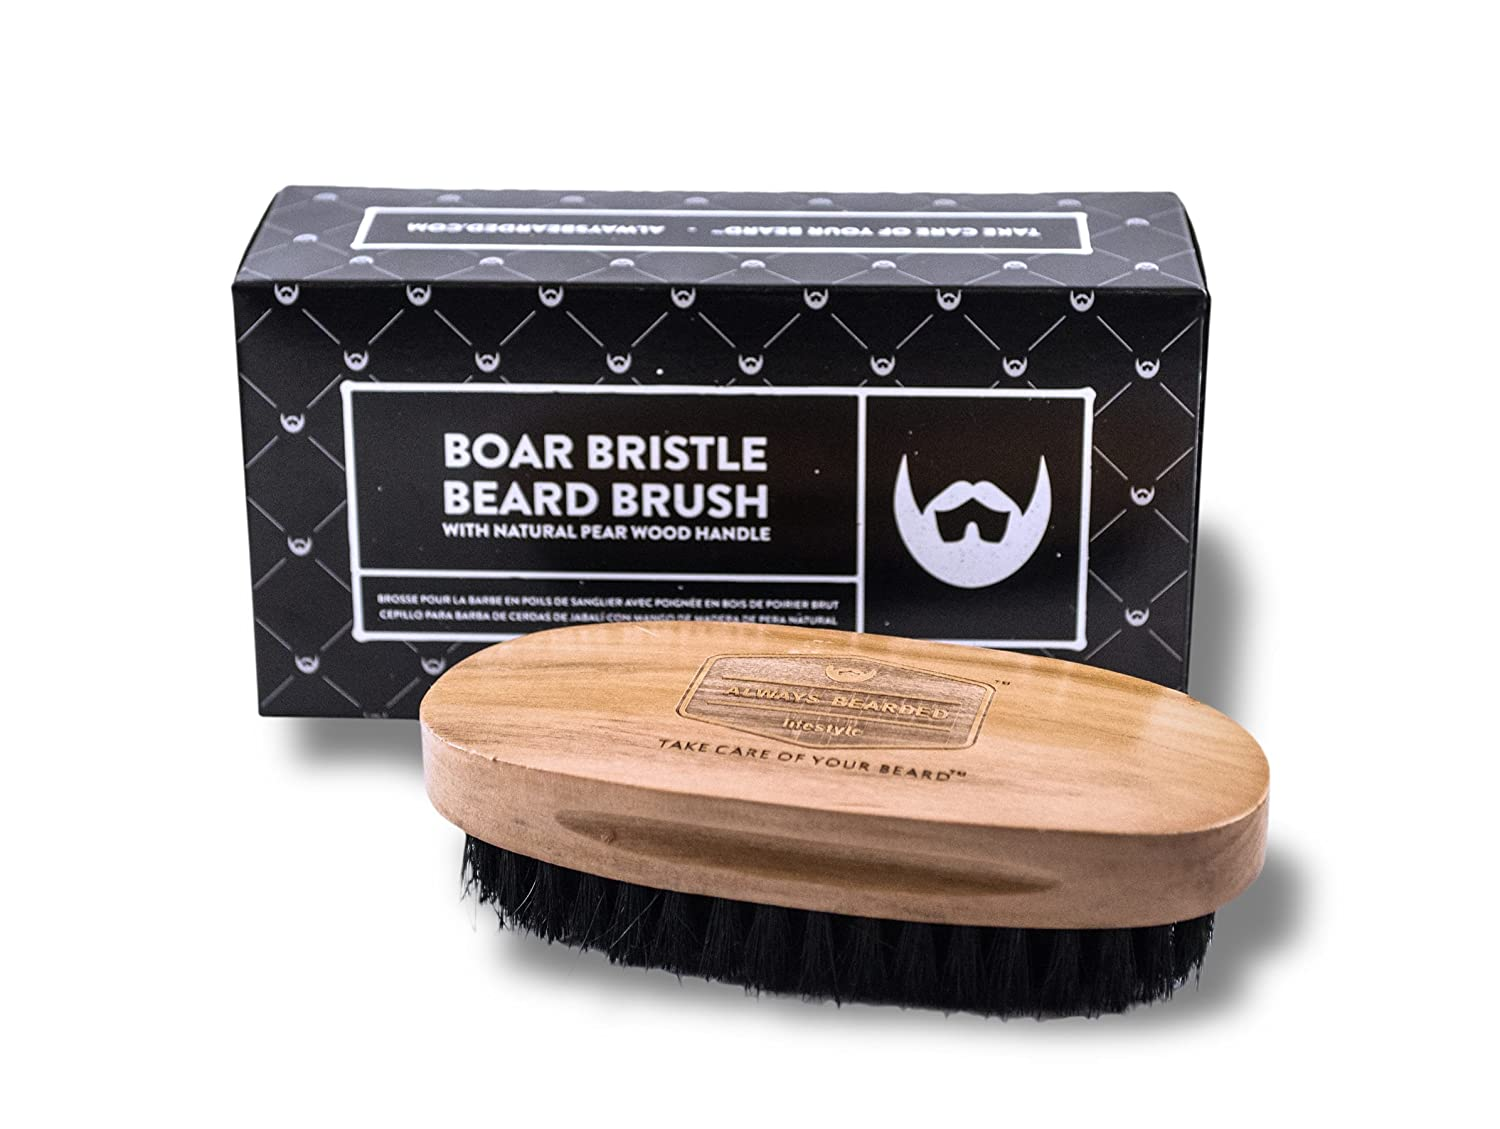 Boar Bristle Beard Brush. Ethically sourced, 100% Natural Black Boar Bristles. Medium Strength Bristles with Pear Wood Handle. Promotes Healthy Skin and Beard Growth. Always Bearded Lifestyle